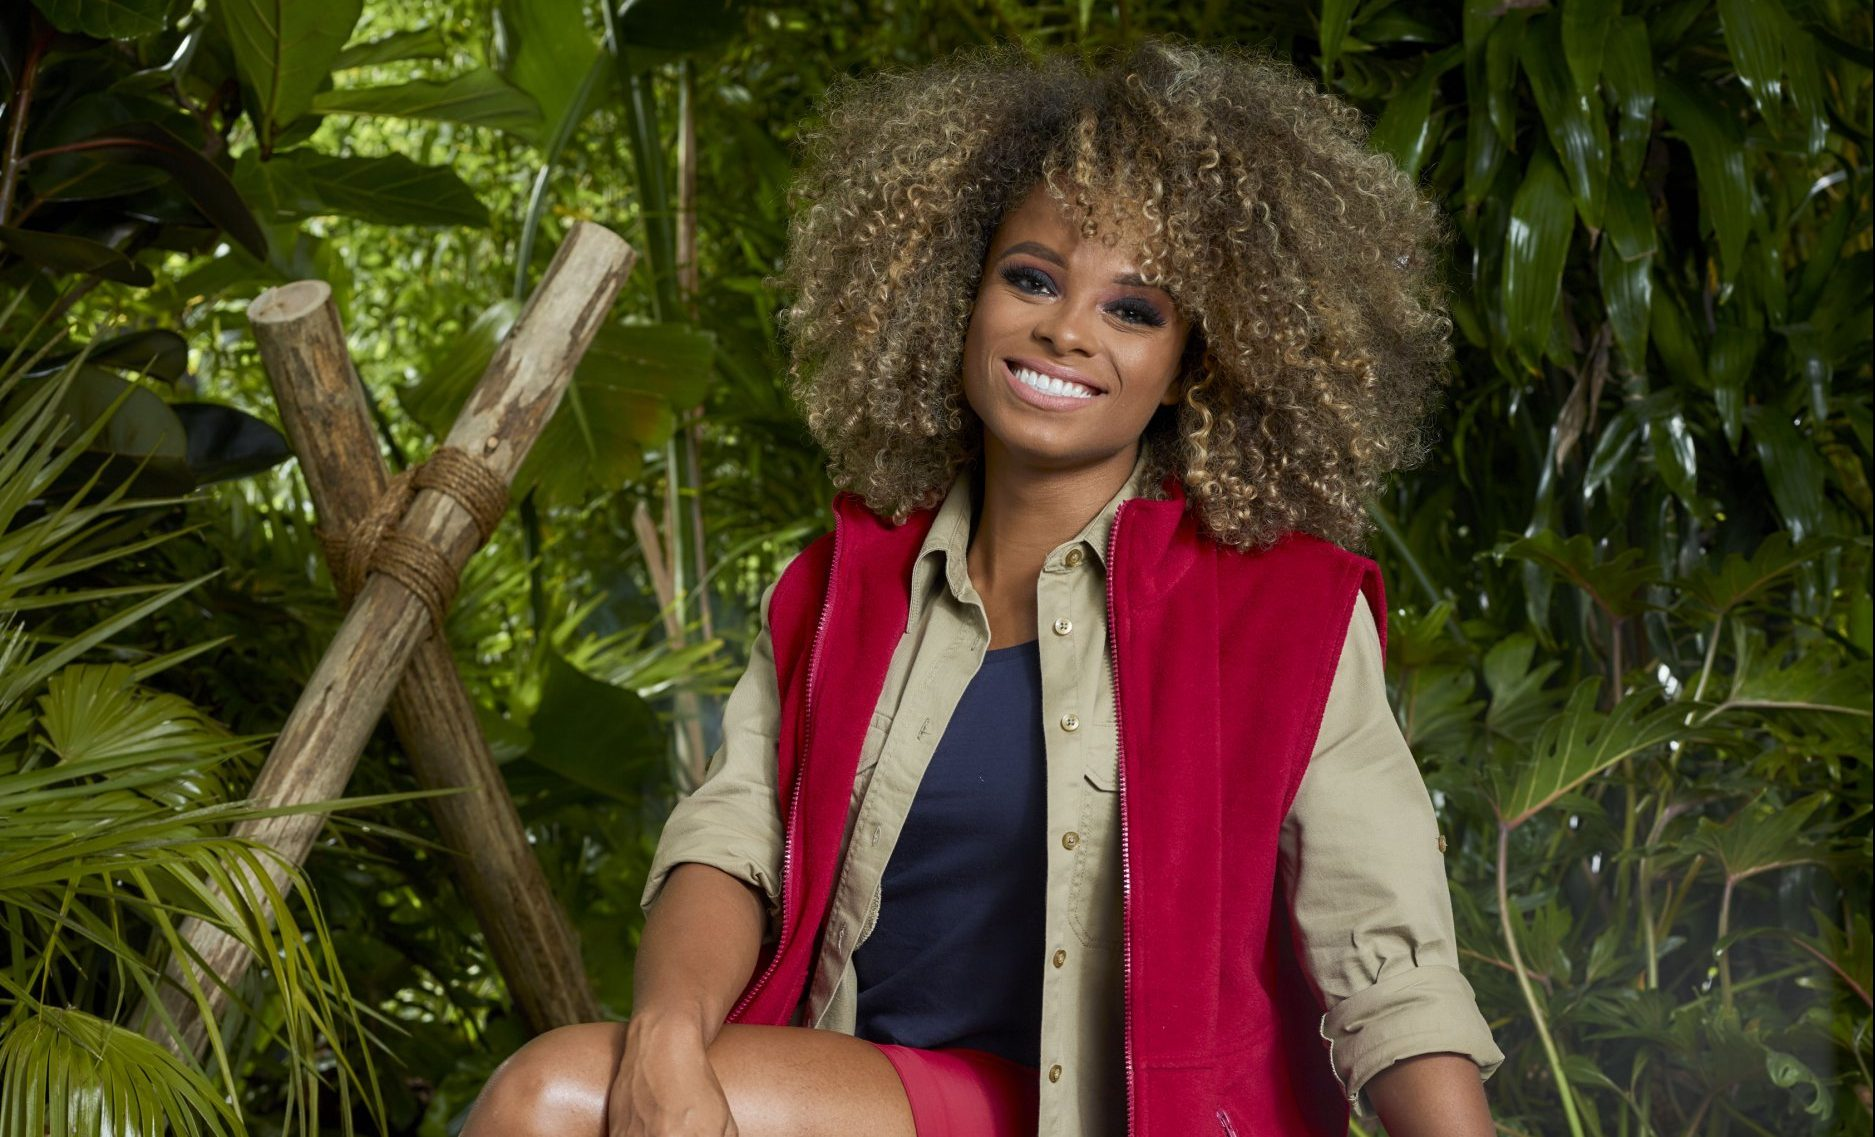 Meet I'm A Celebrity 2018 contestant Fleur East – who says the jungle will be tougher than facing Simon Cowell